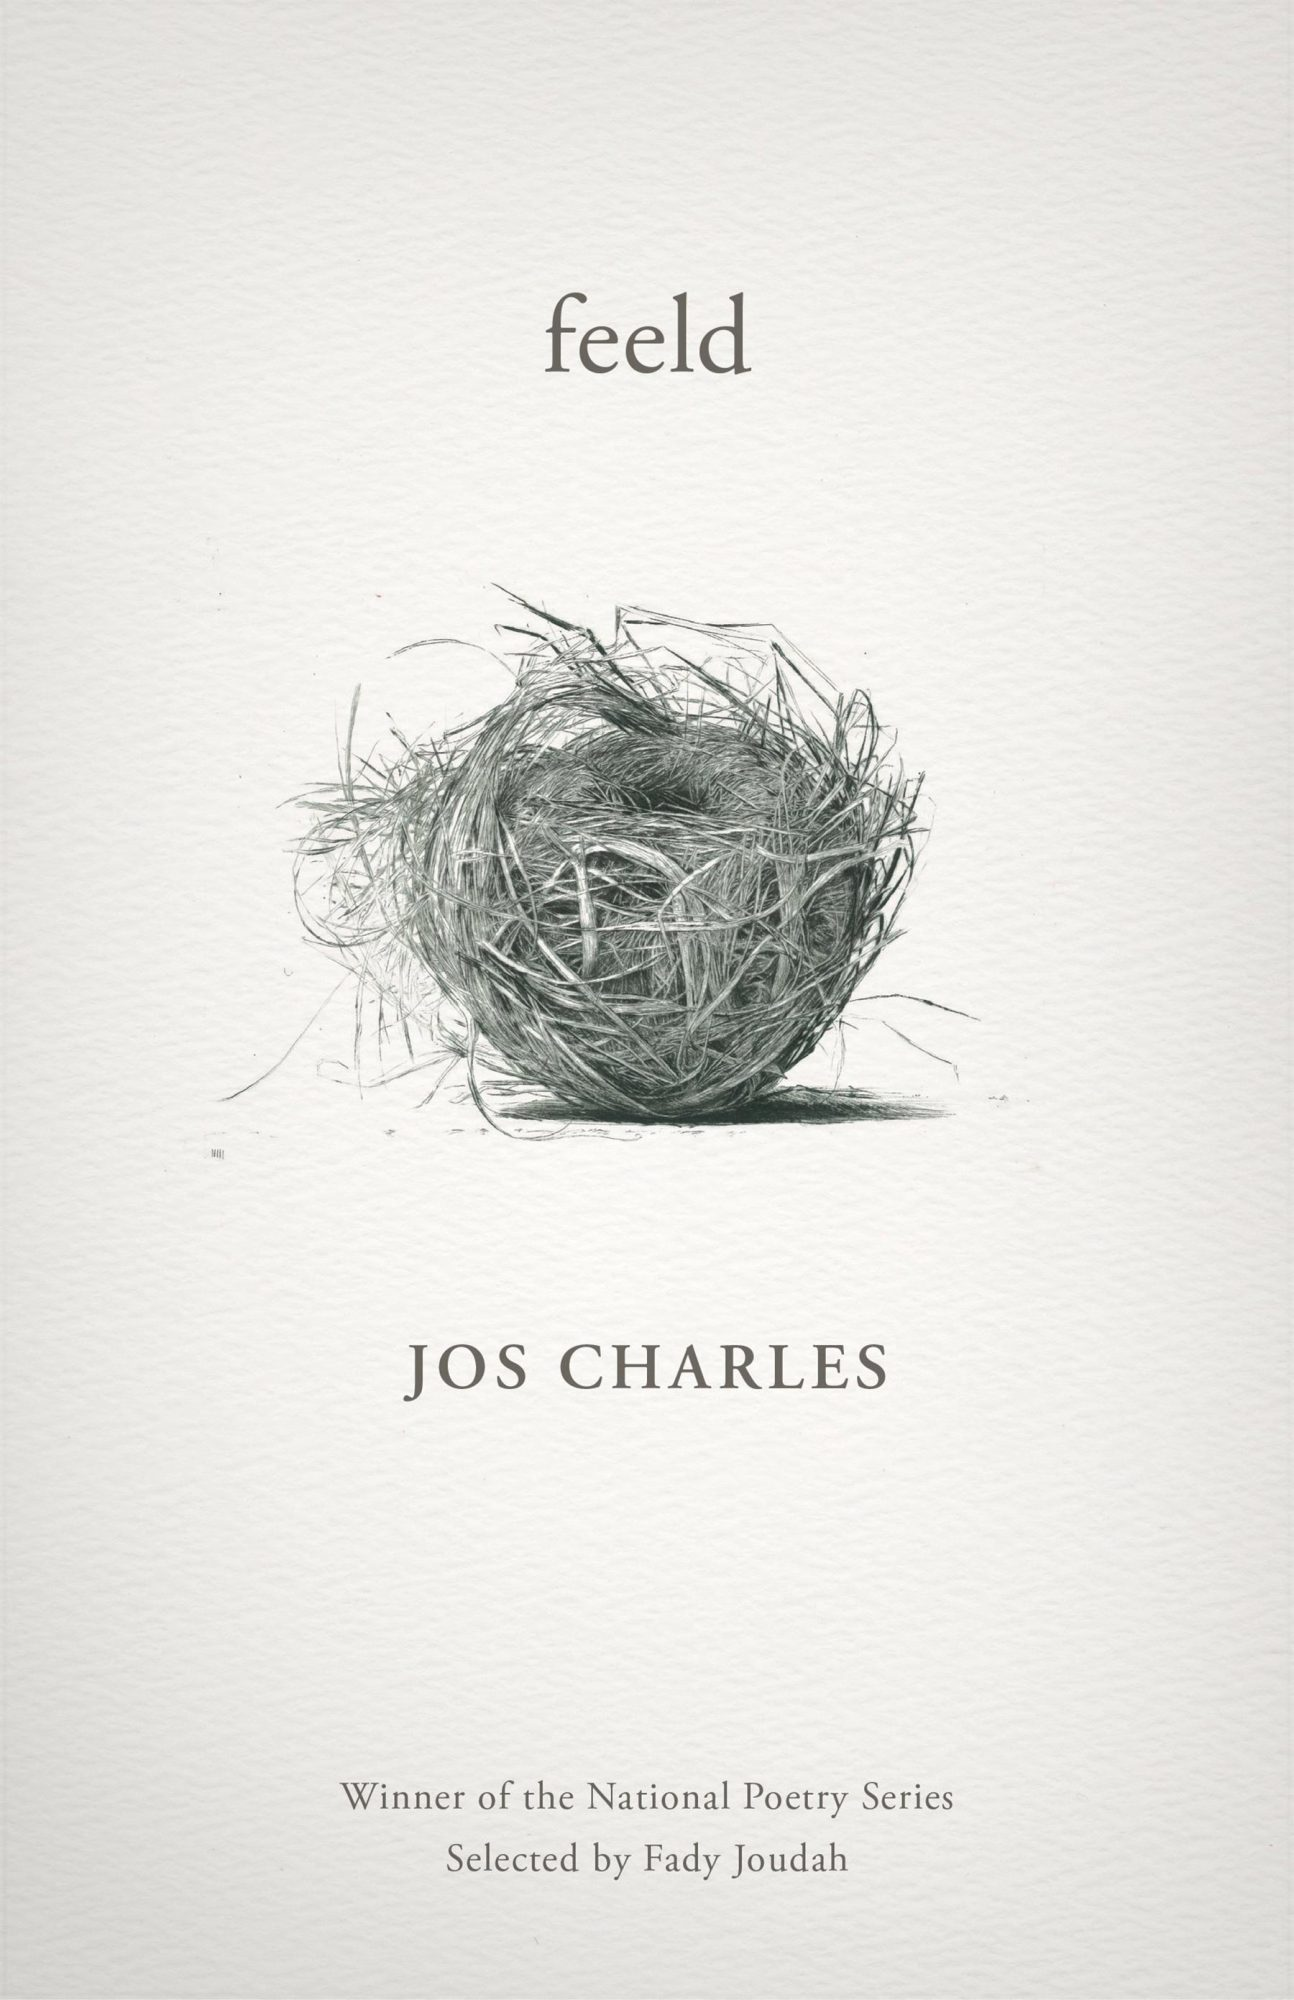 Feeld by Jos CharlesPublisher: Milkweed Editions